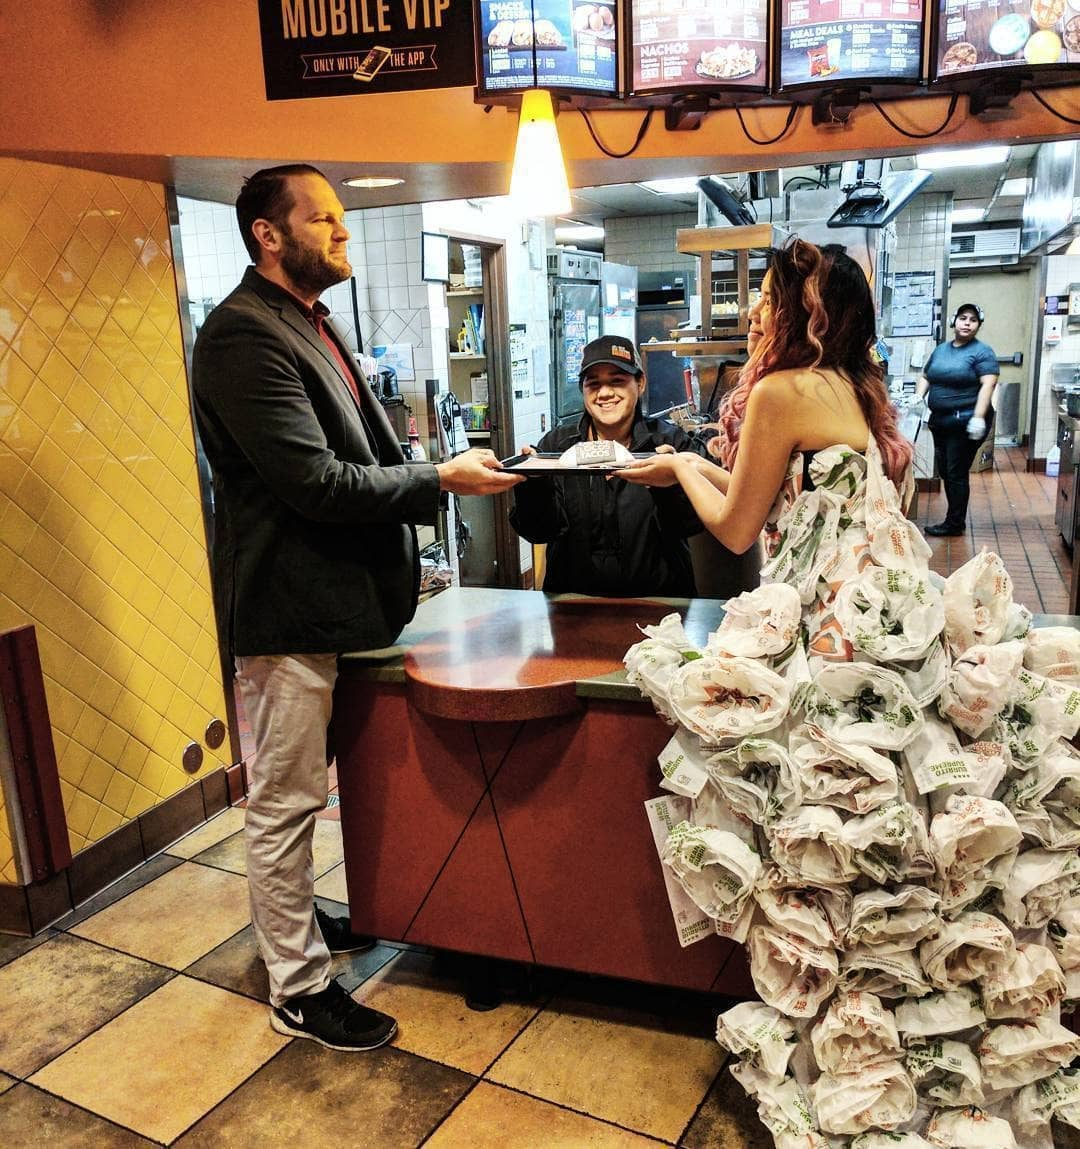 Seriously! Someone created a wedding dress out of burrito wrappings.